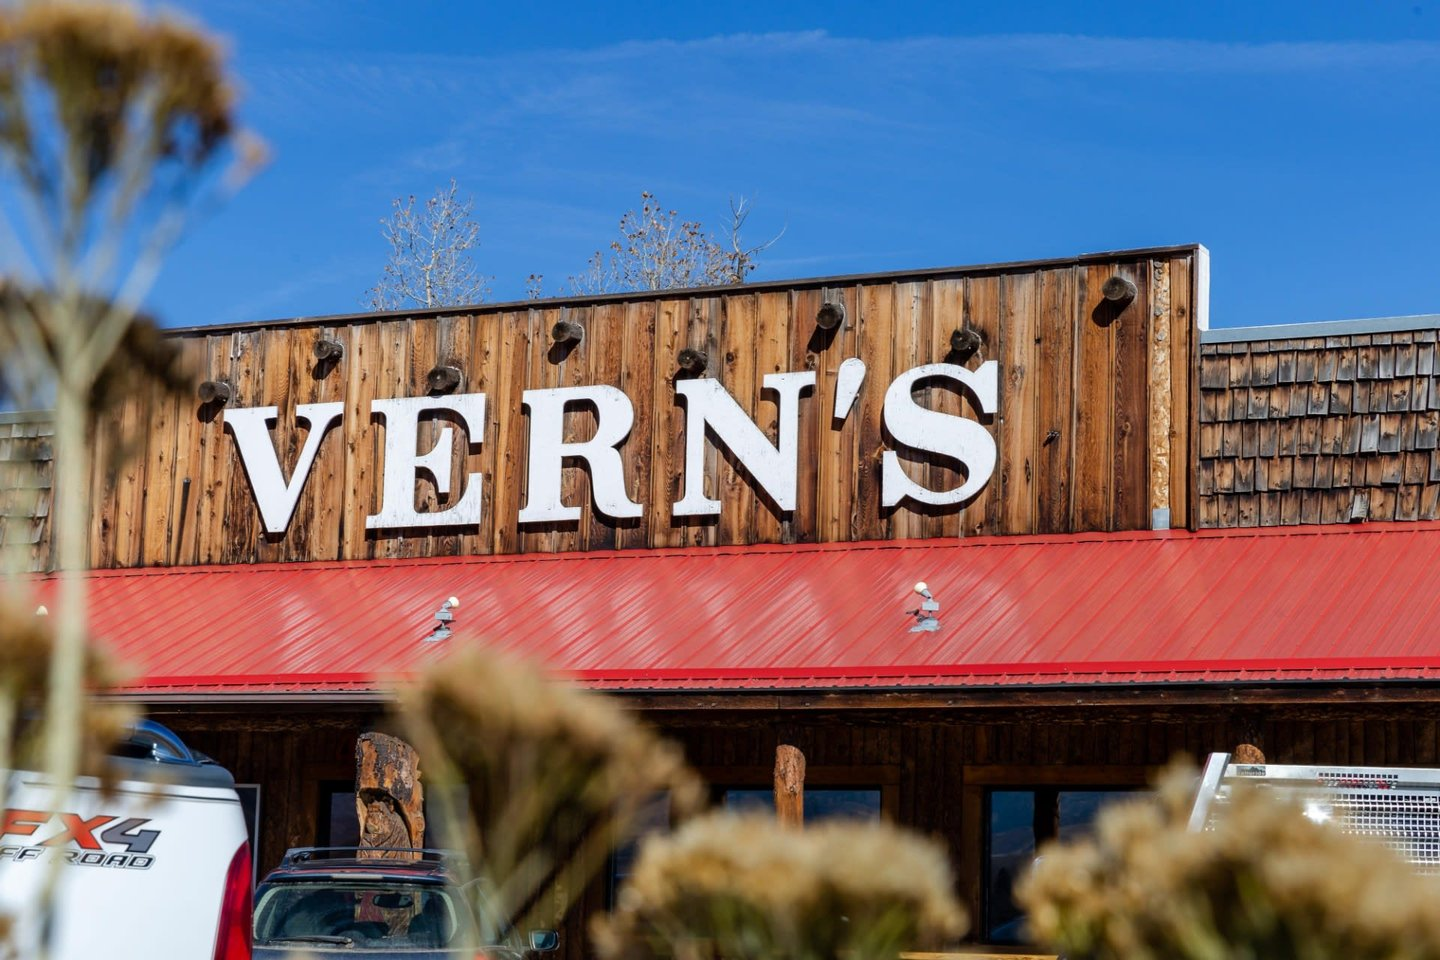 Vern's Place Exterior Signage